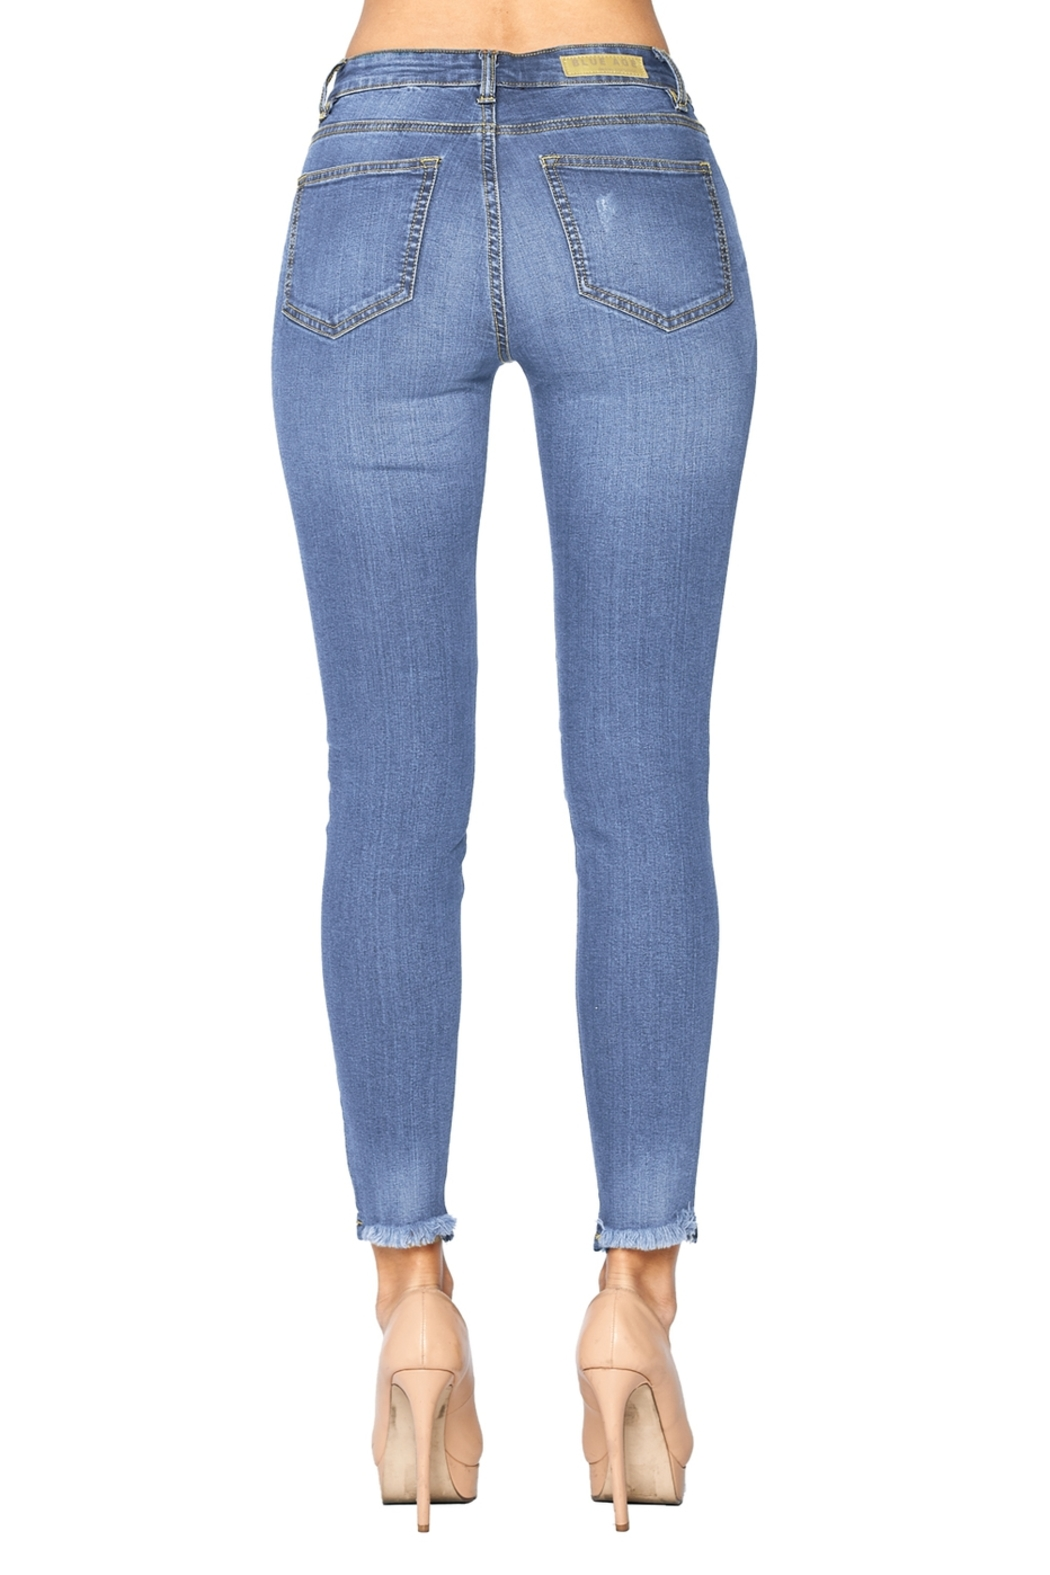 Lyn-Maree's  Lady frayed Hem Ankle Skinnies - Front Full Image